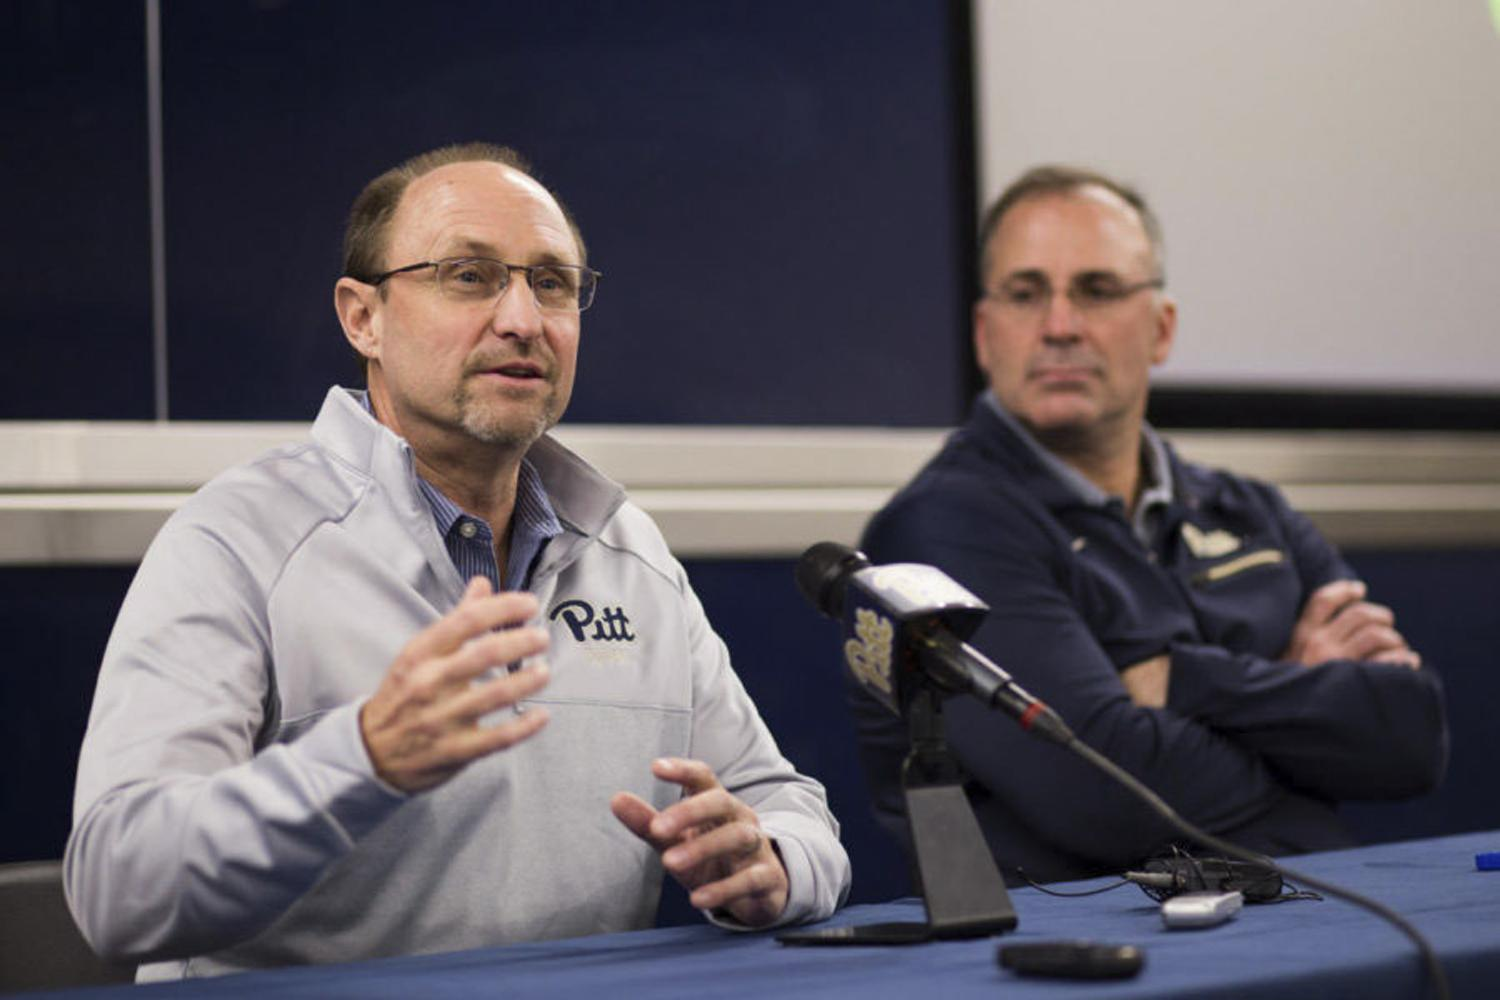 Pitt's new defensive coordinator, Randy Bates, speaks at his first press conference since arriving at Pitt from Northwestern. (Photo by John Hamilton | Contributing Editor) Art: Photos